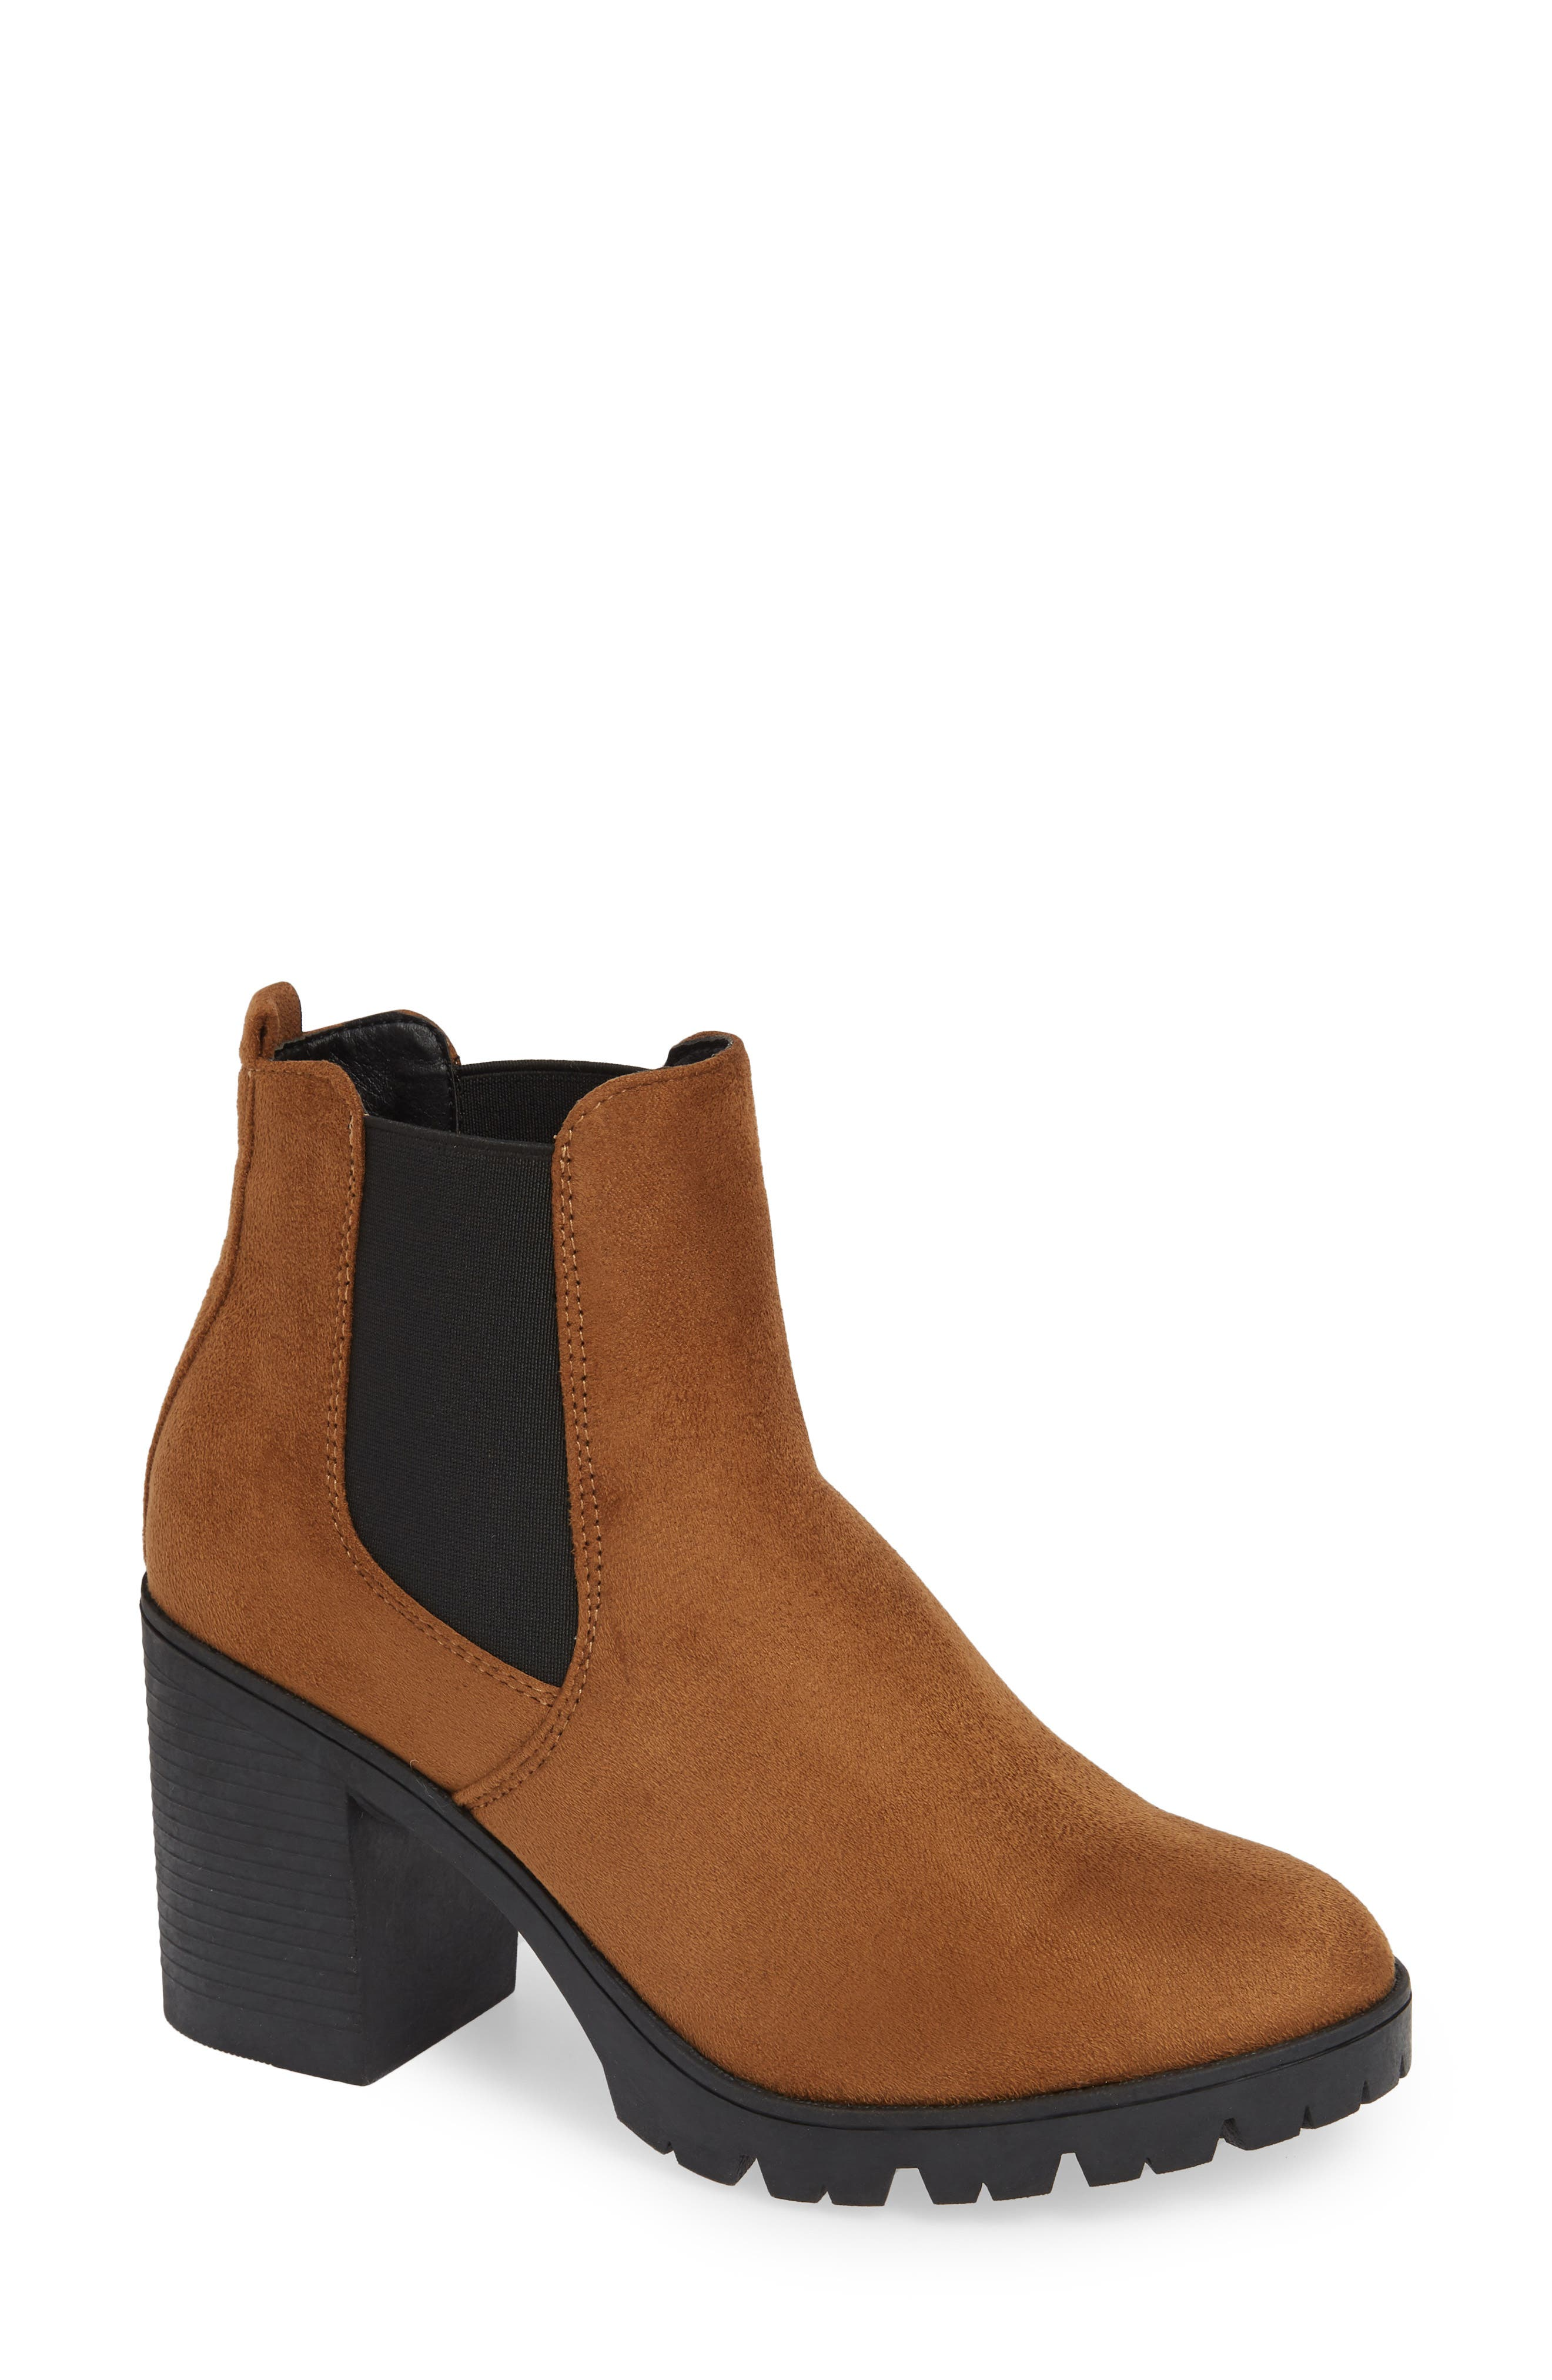 Bobby Chelsea Bootie,                             Main thumbnail 1, color,                             200